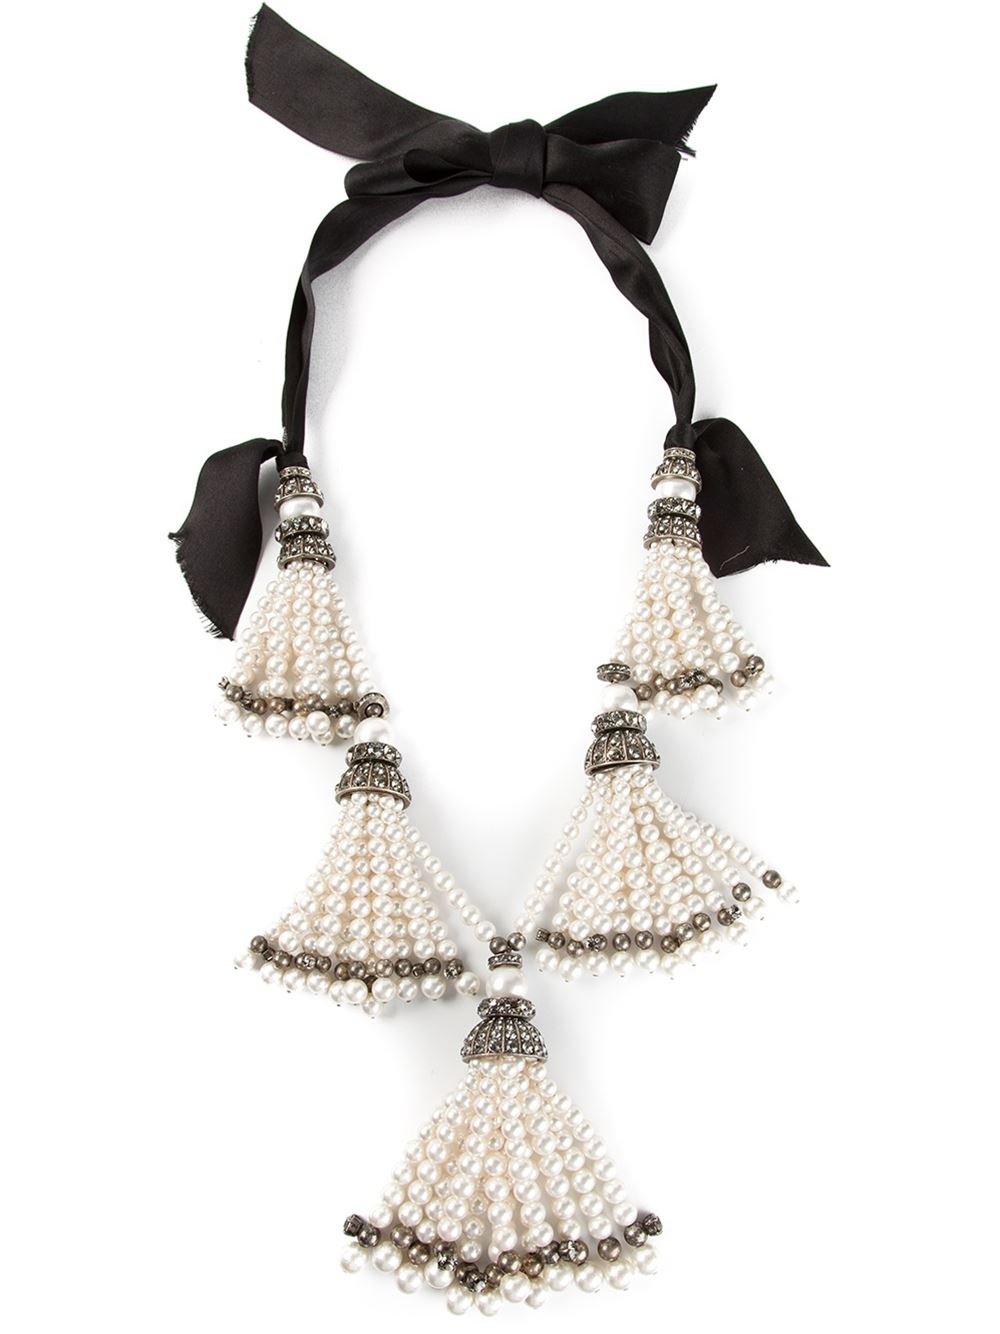 Lanvin Pearls Necklace White 6a9TDj0r